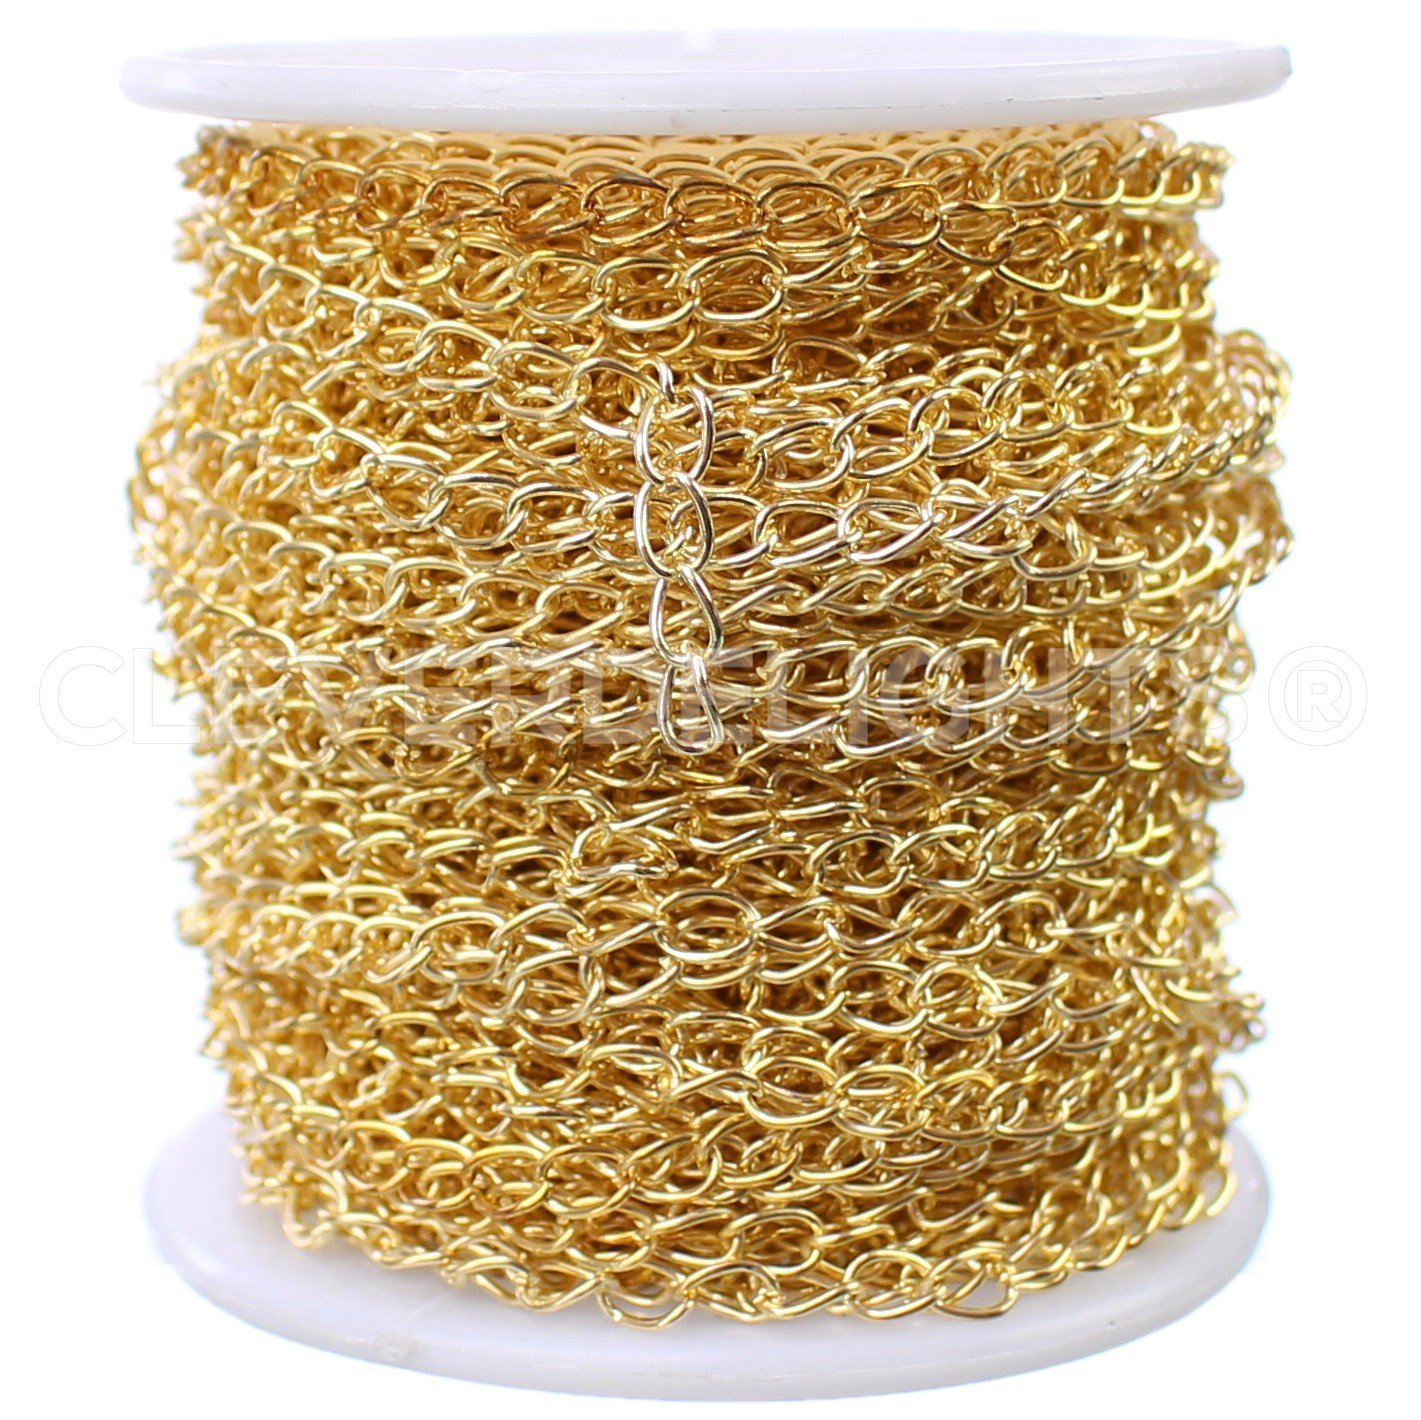 CleverDelights Curb Chain Spool - 3.5x5.5mm Link - Gold Color - 100 Feet